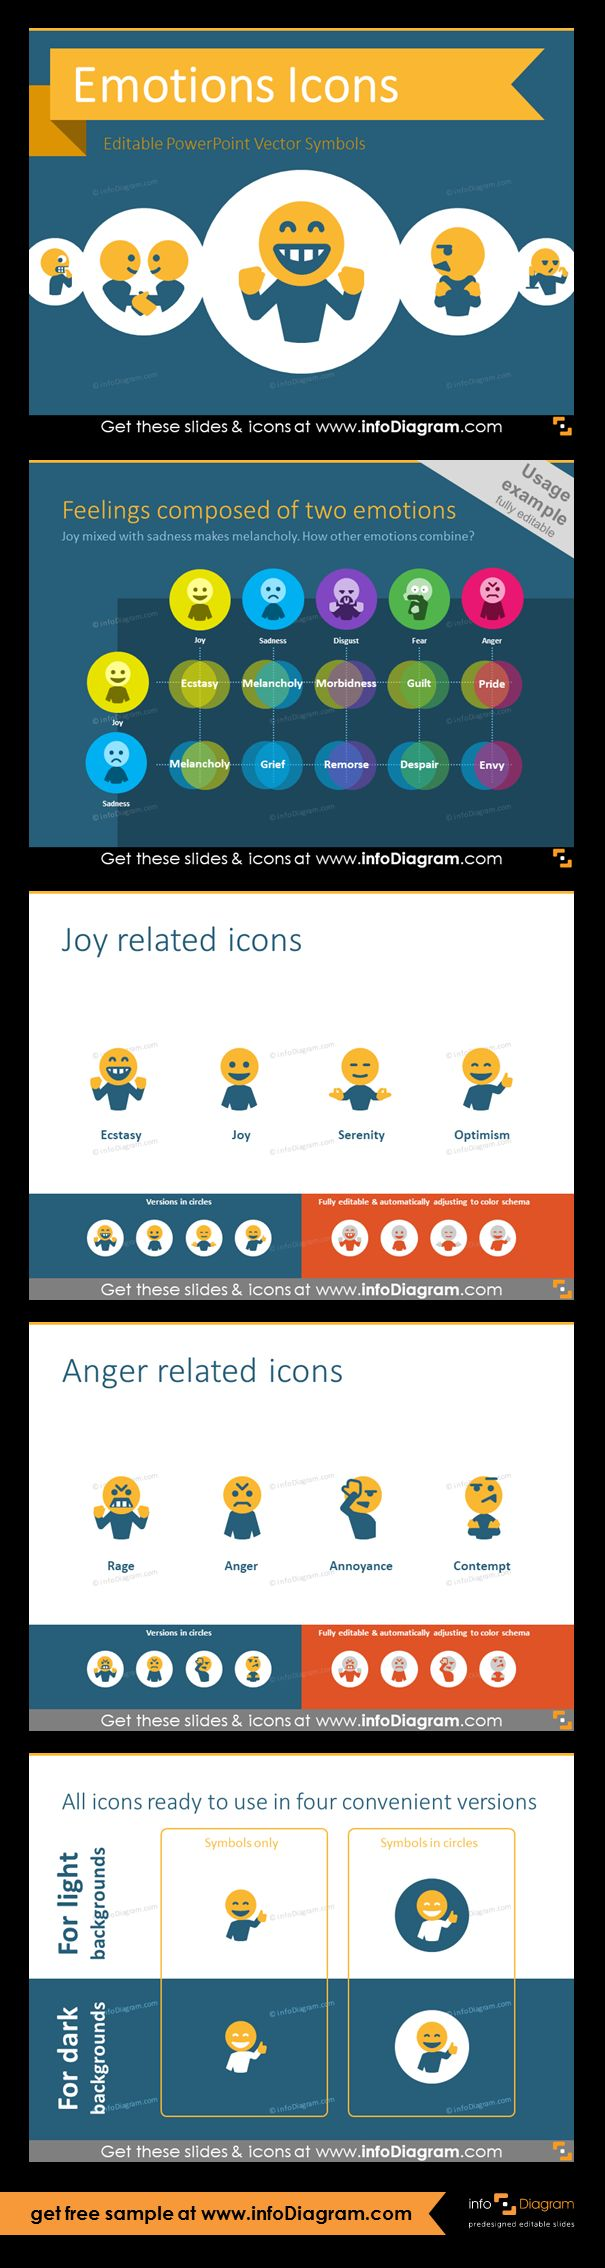 Collection of human feelings and emotions list symbols and diagrams for HR, psychology, coaching, soft-skills training applications. Fully editable style. Size and colors easy to adjust using PowerPoint editor. Example diagram - feelings, composed of two emotions (joy and sadness); joy icons - ecstasy, joy, serenity, optimism; anger - rage, annoyance, anger, contempt; slide with four icon variants, ready for use.